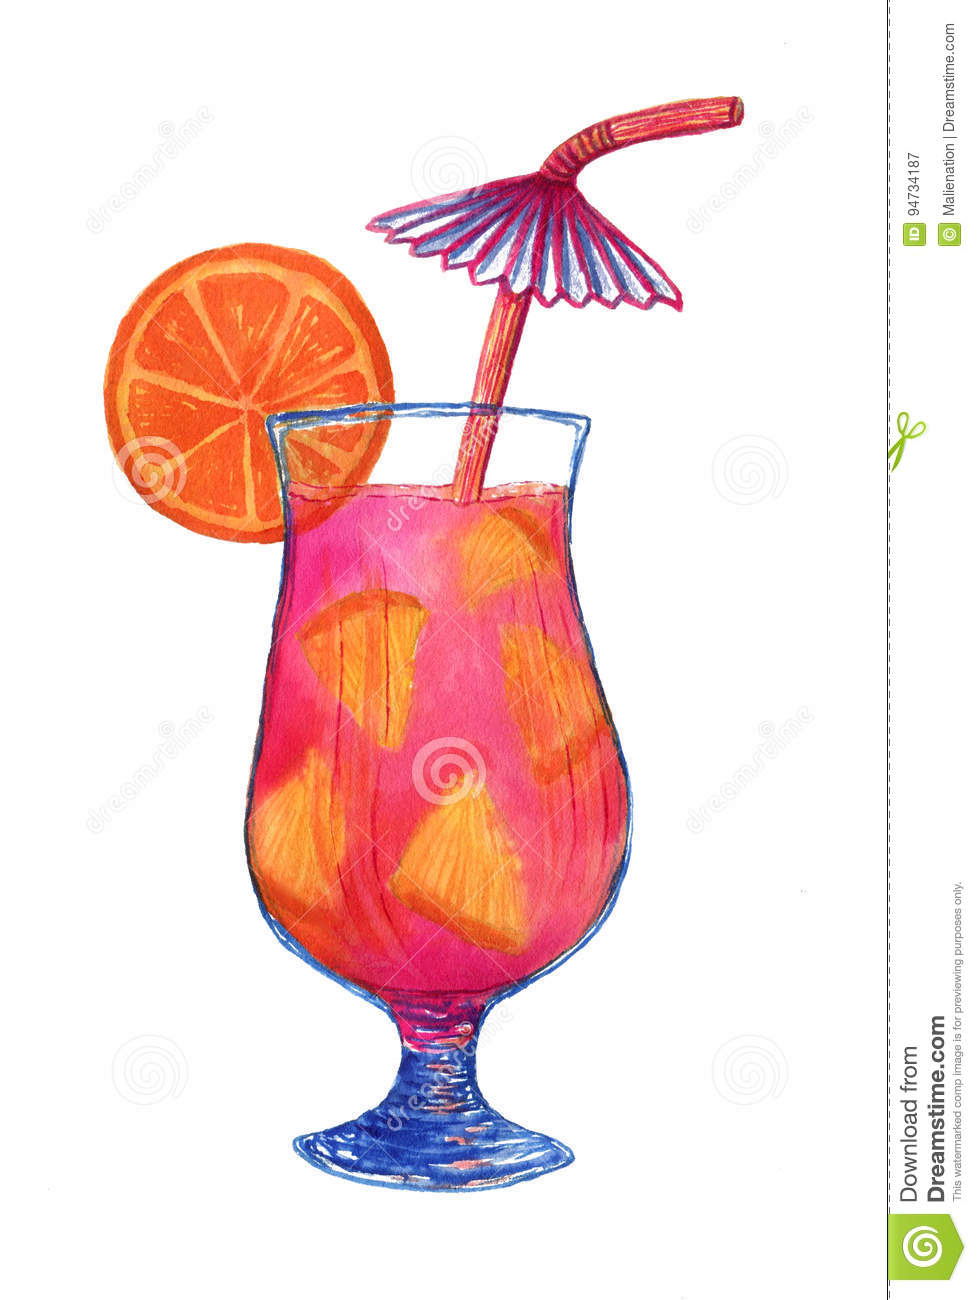 Watercolor fresh cocktail with orange fruit. Isolated illustration for menu decoration or fashion print design.